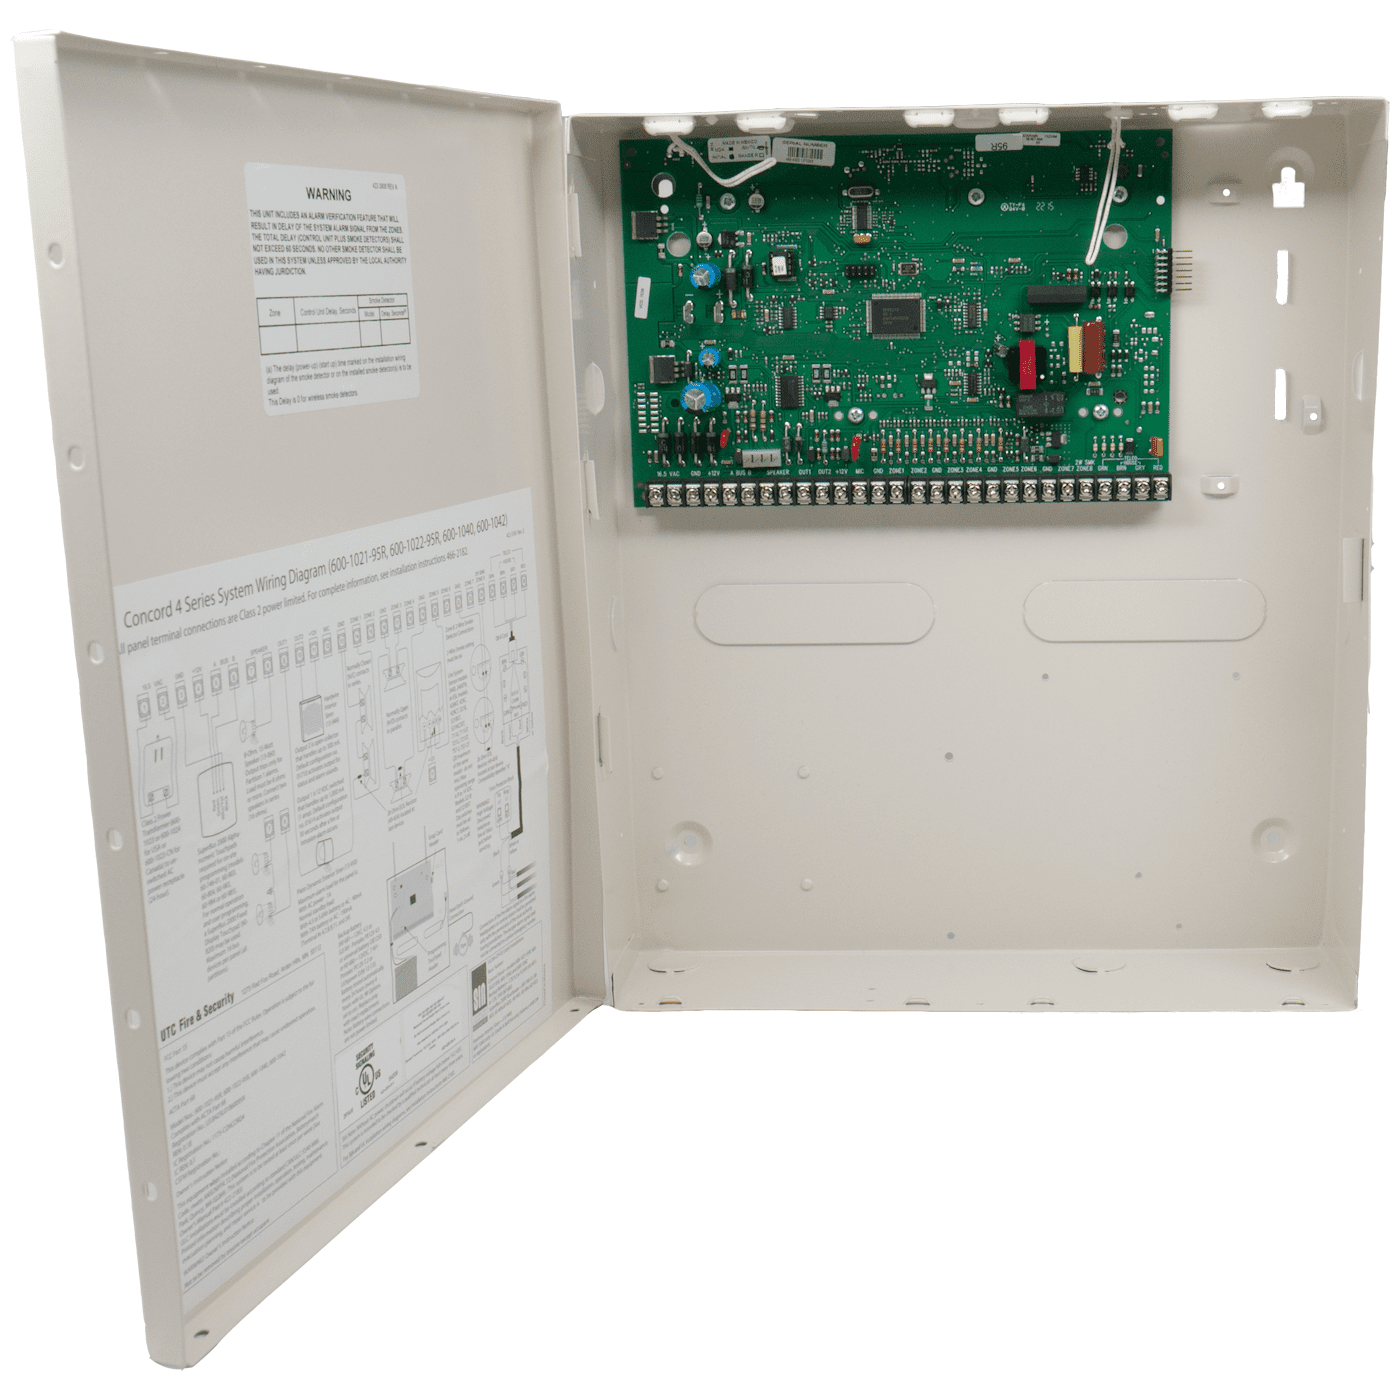 600 1021 95r interlogix concord 4 alarm control panel rh geoarm com GE Motor Wiring Schematics GE Dryer Diagram